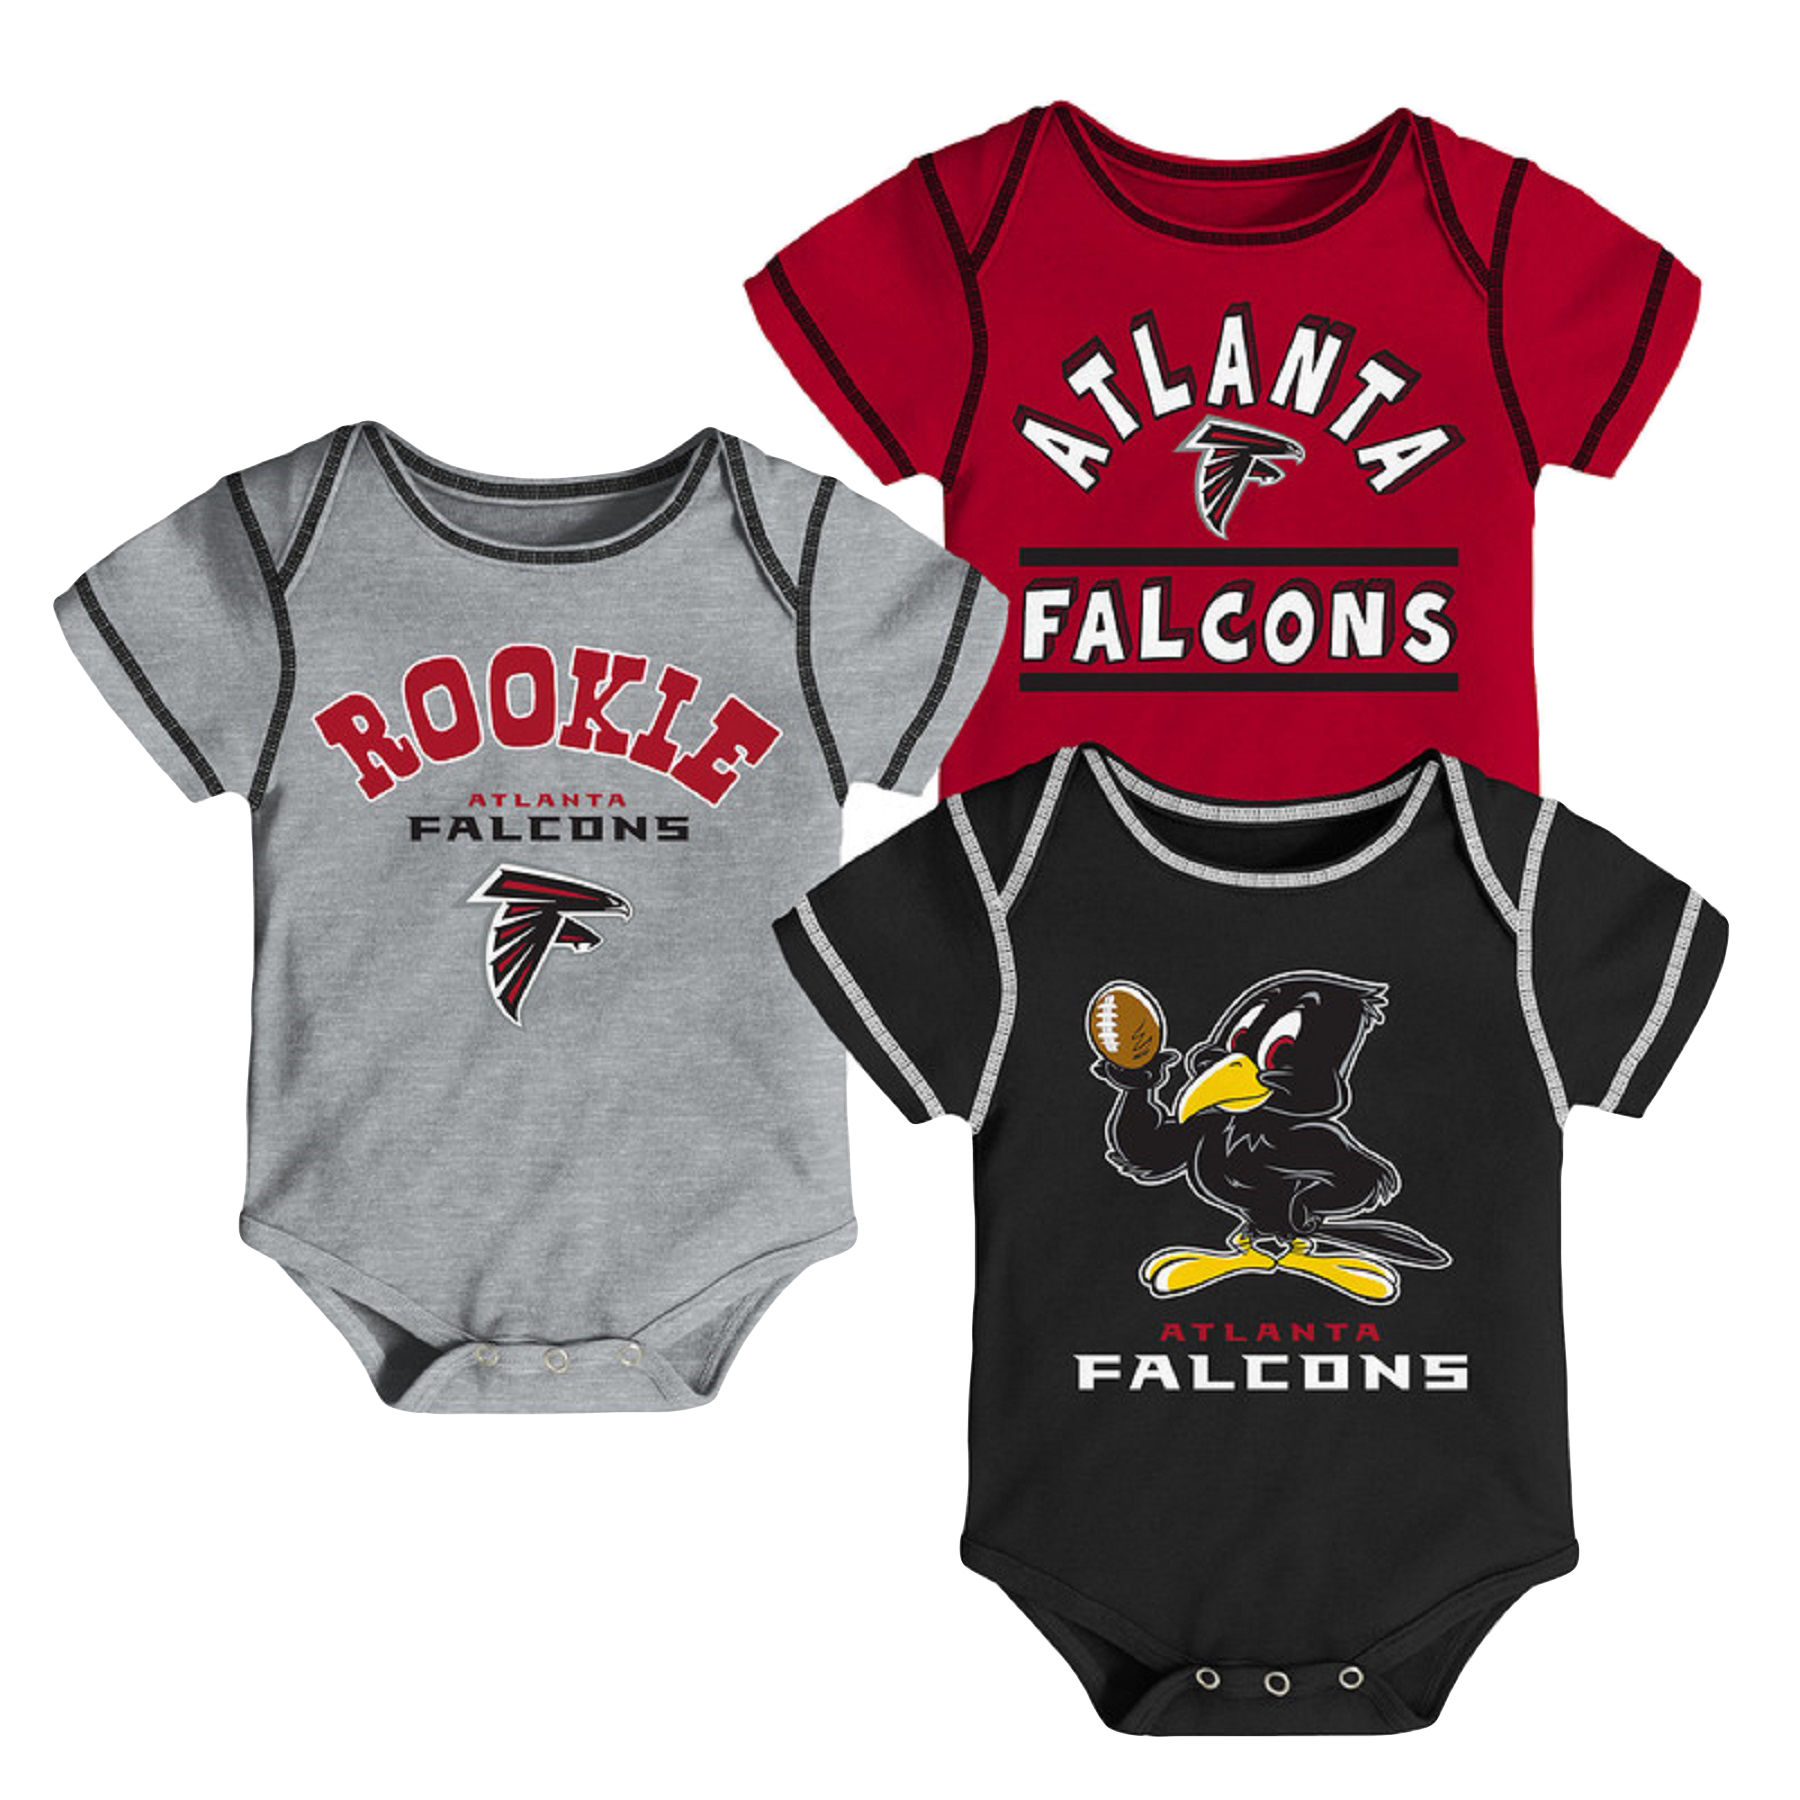 Newborn & Infant Red/Black/Gray Atlanta Falcons 3-Pack Bodysuit Set